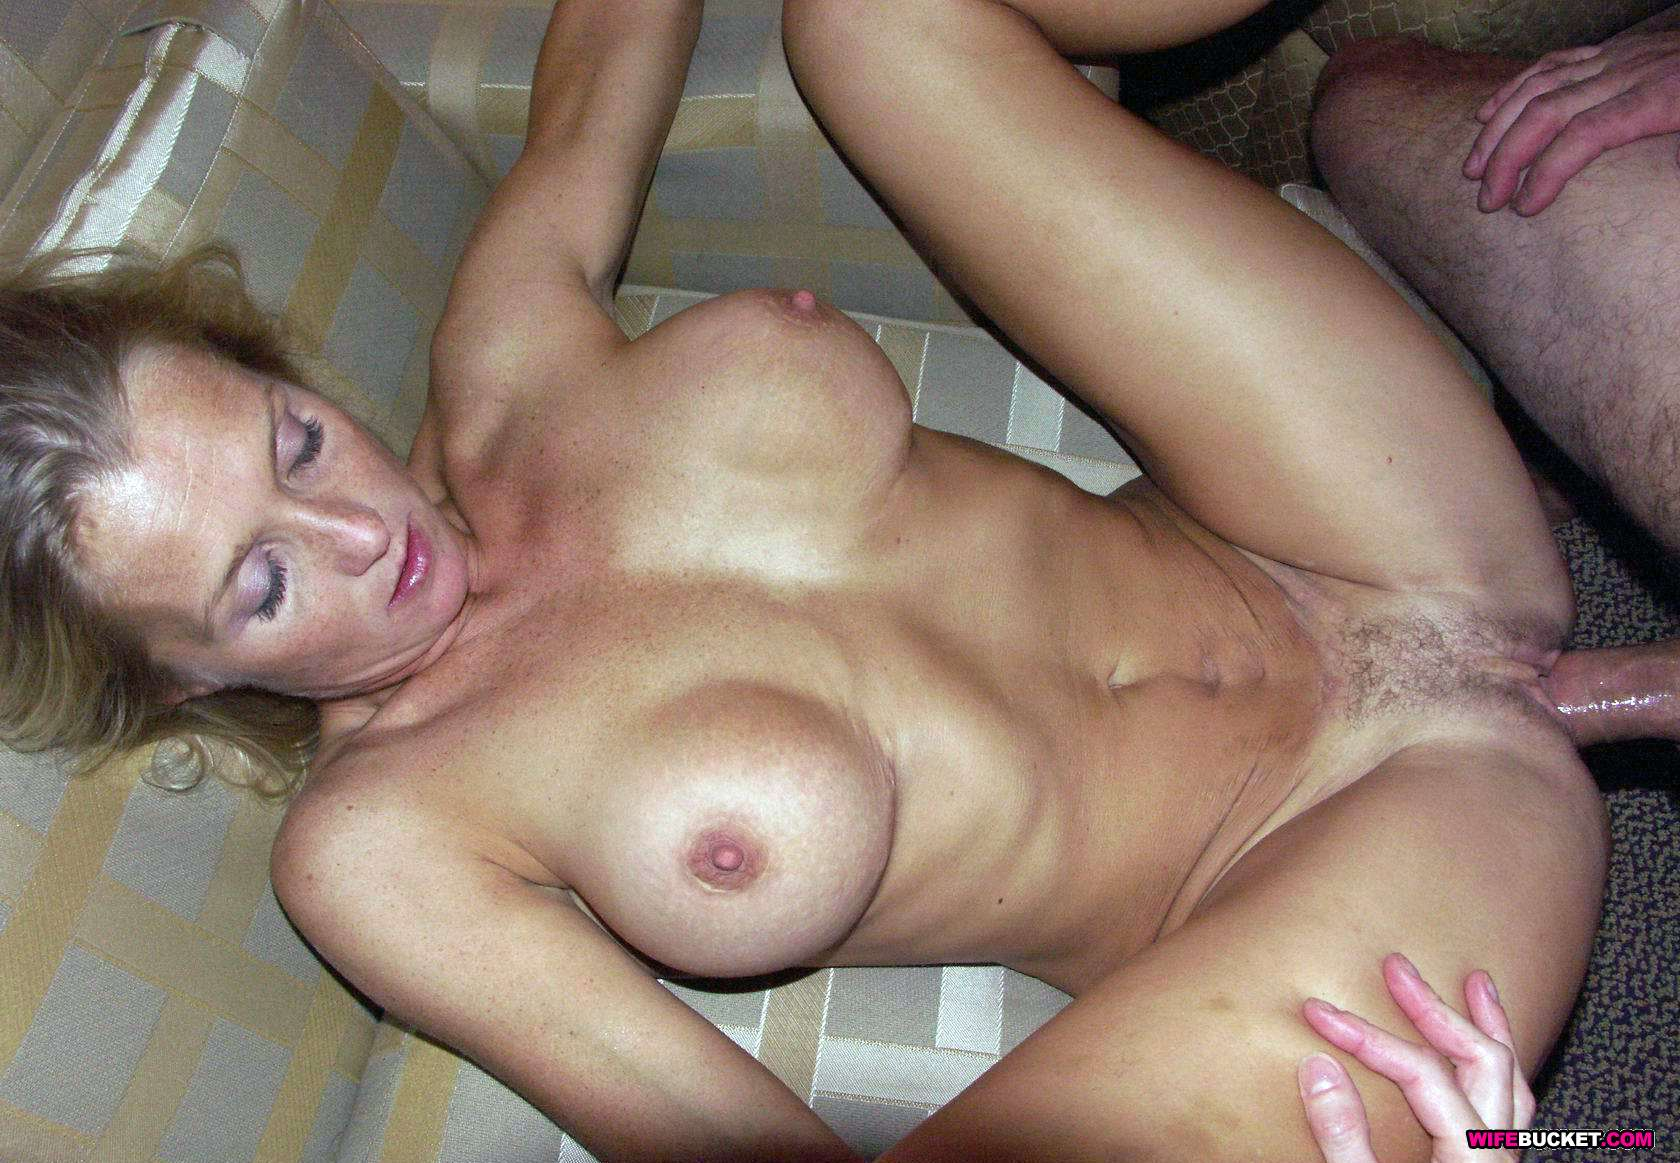 Cute reality blonde fingered for some cash 6